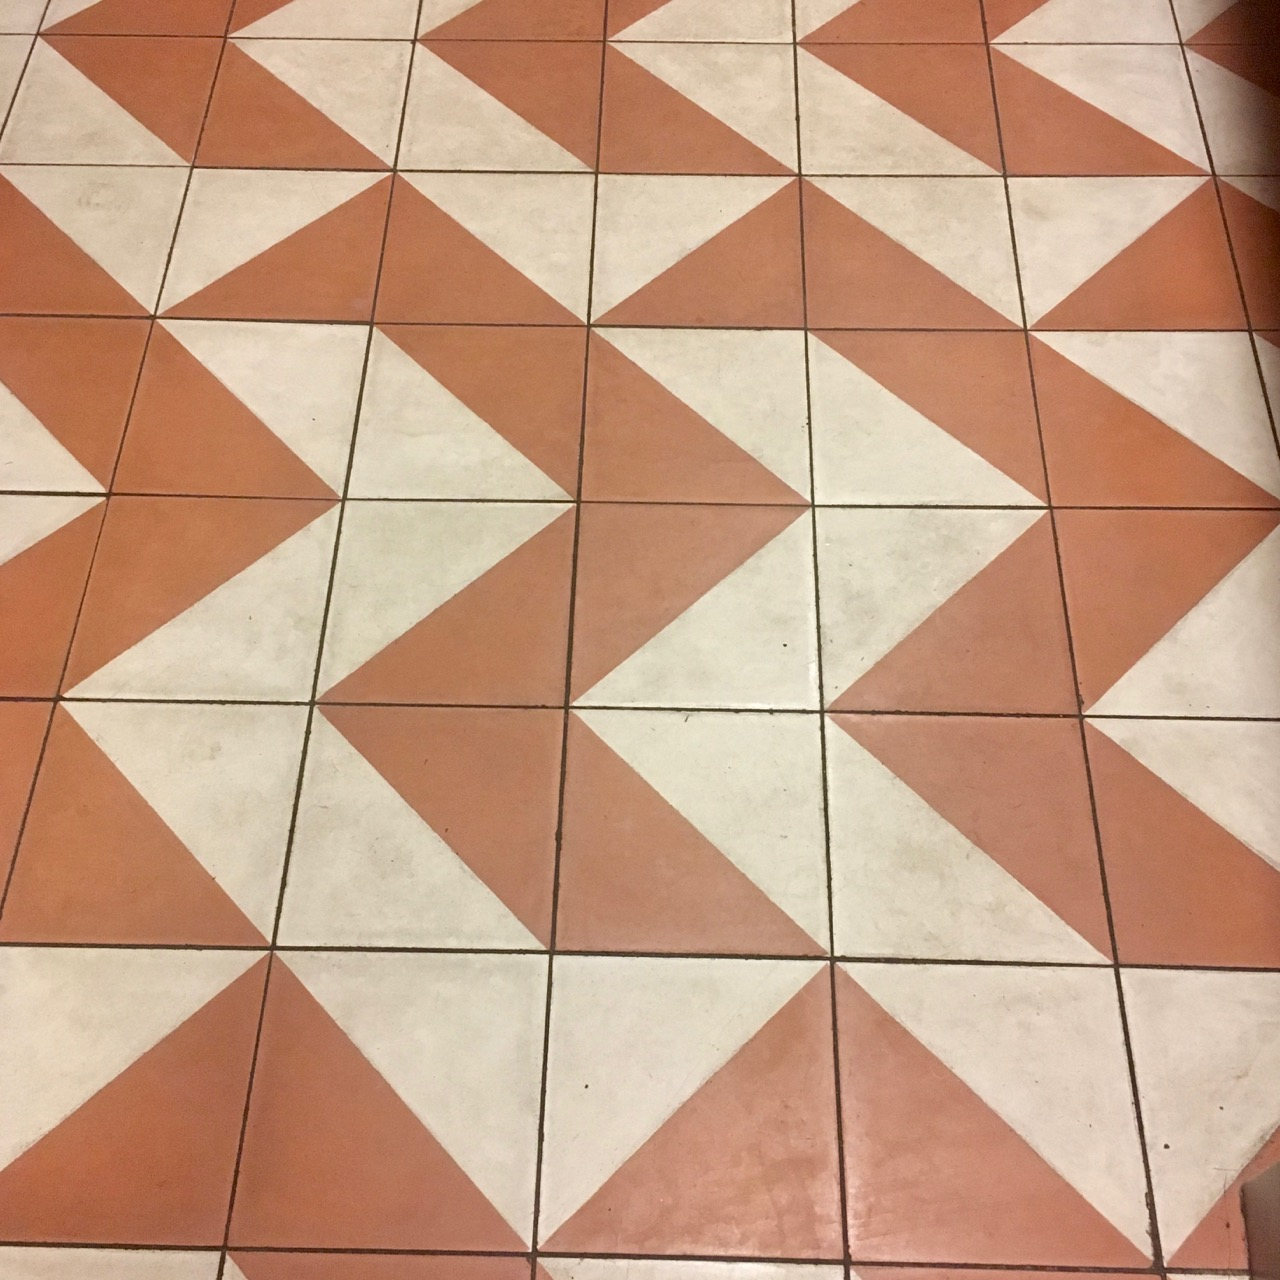 A geometric - and possibly grubby - floor